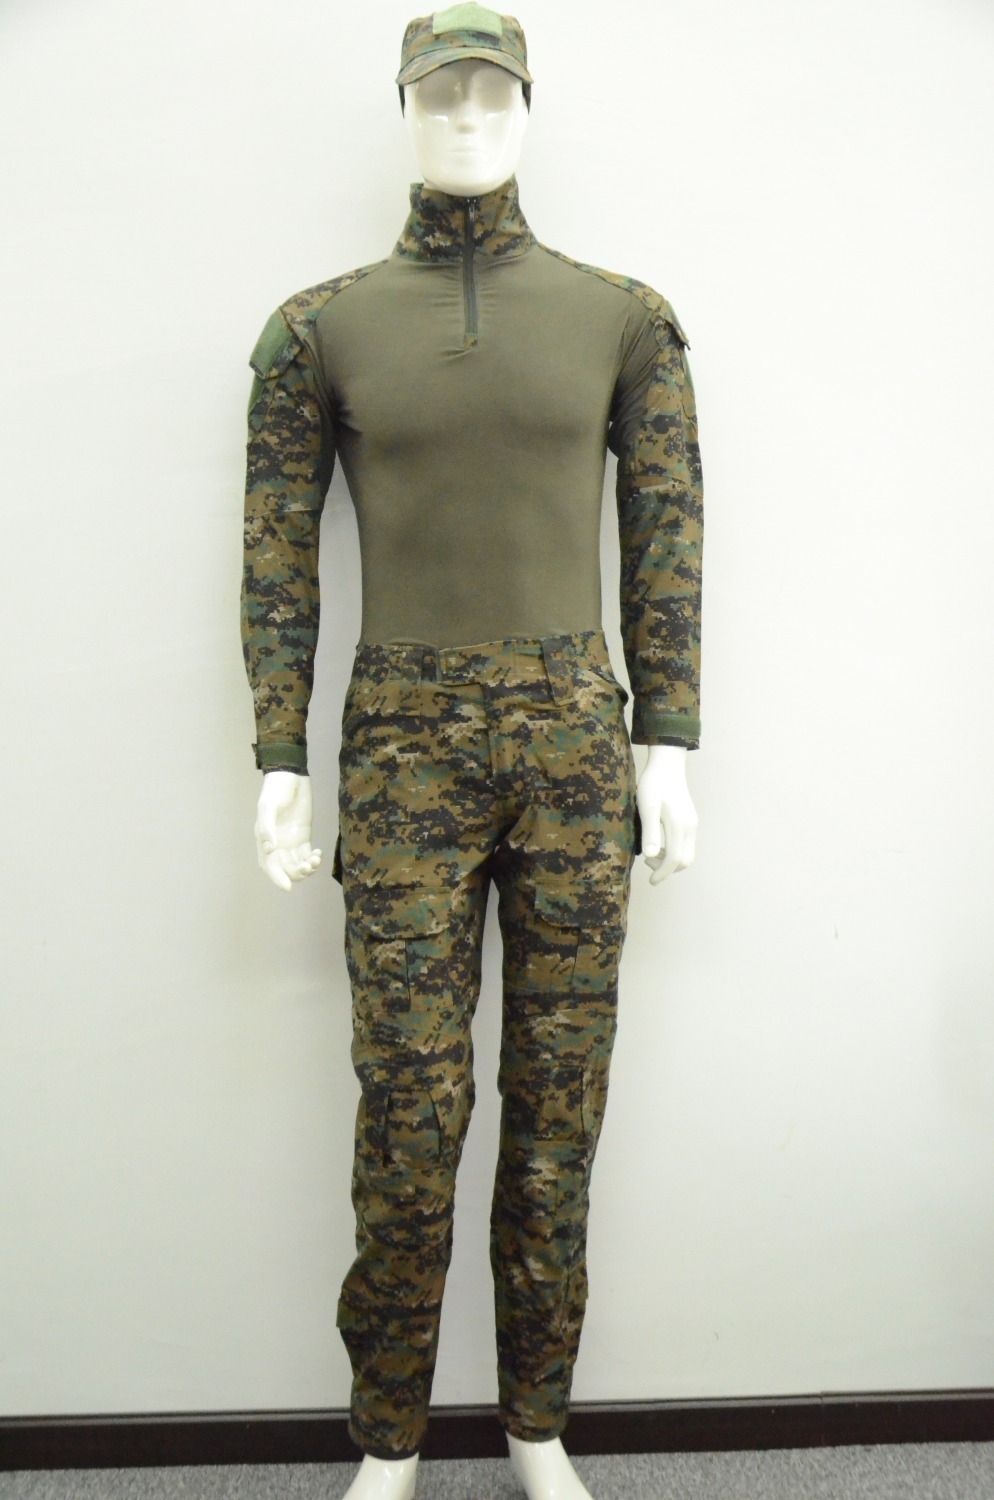 frog suit airsoft us army military uniform tactical usmc